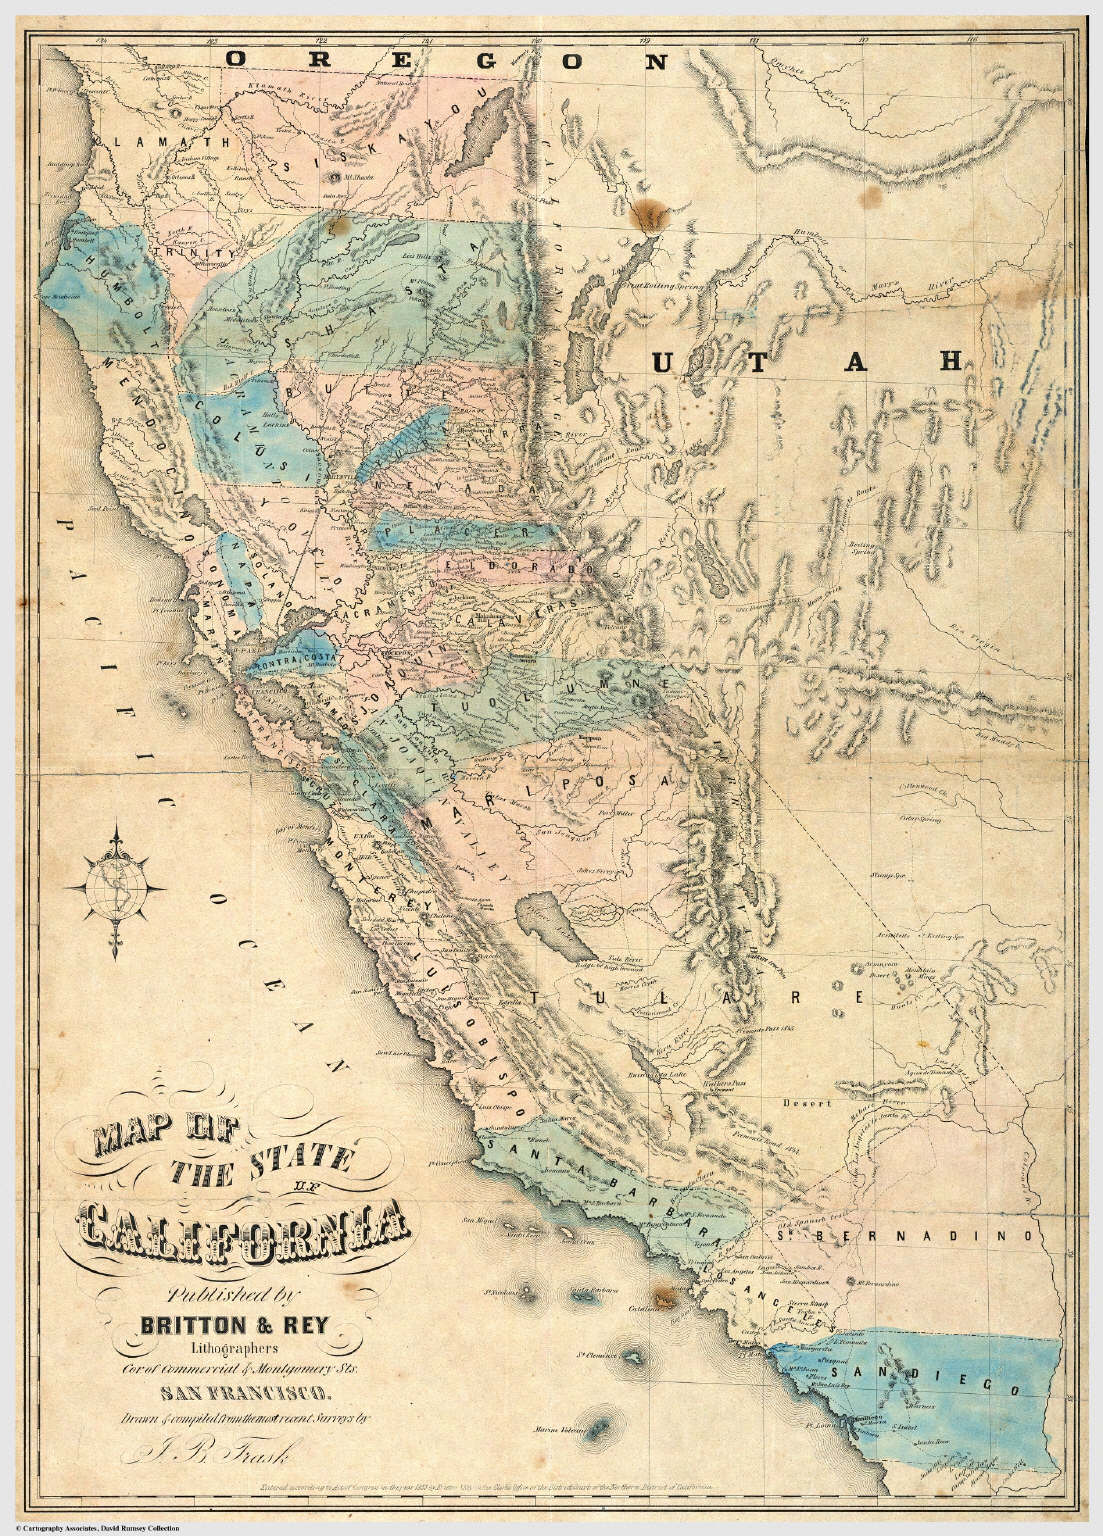 Map Of The State Of California David Rumsey Historical Map - Map of the state of california